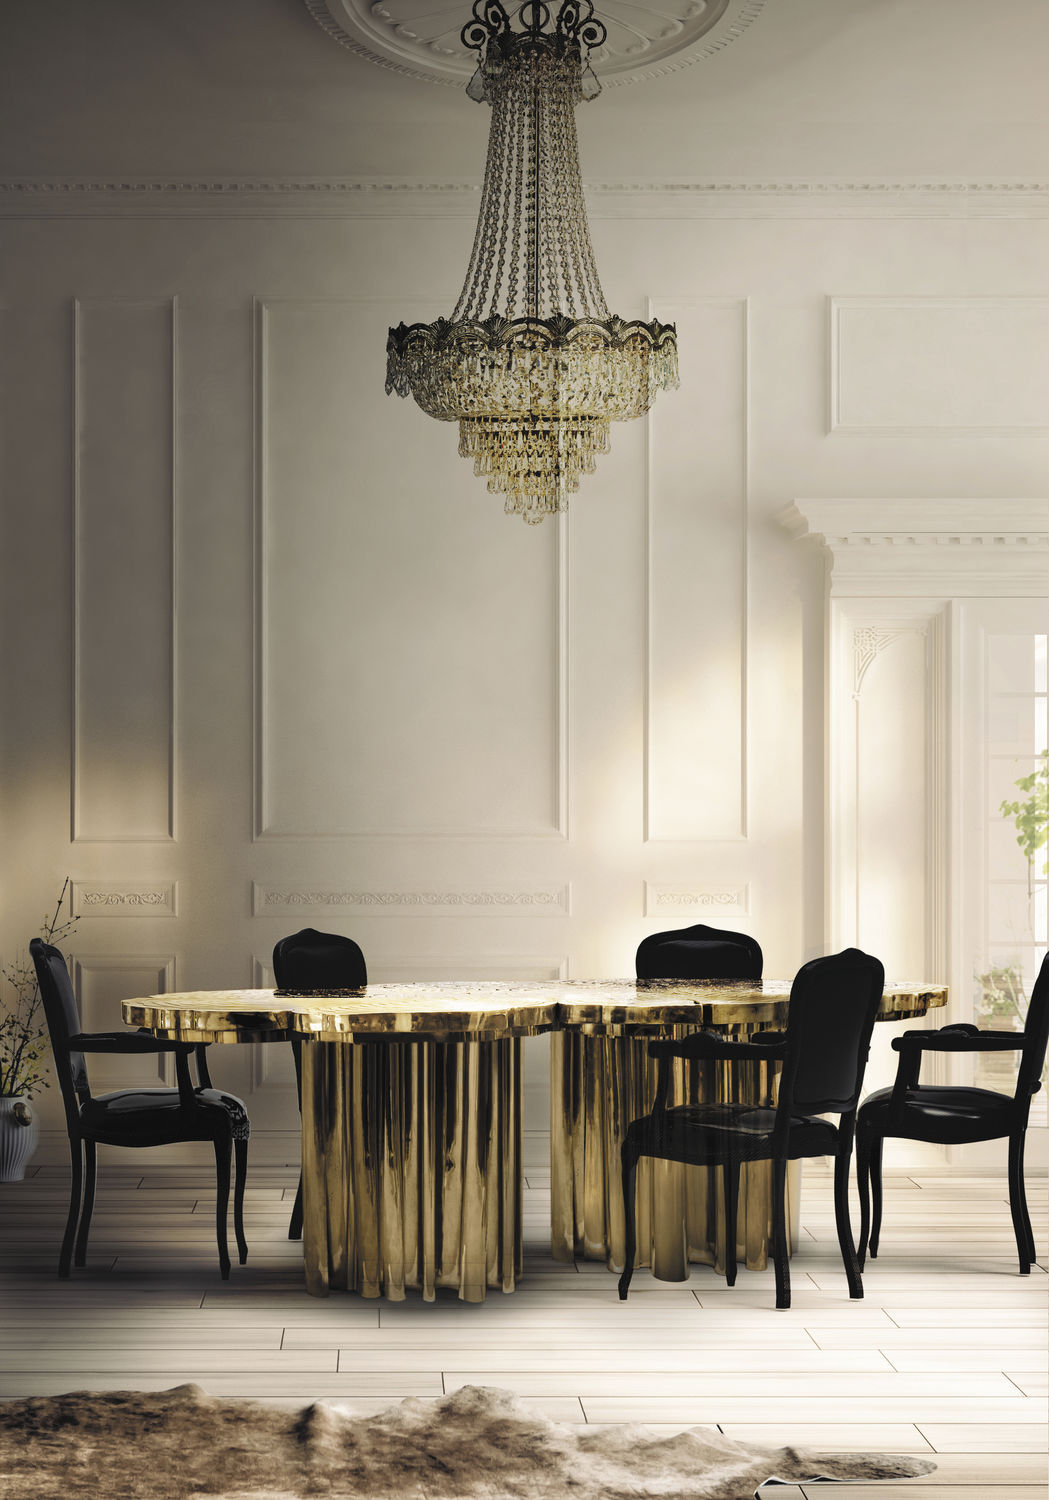 fortuna dining table  best dining room tables 10 of the best dining room tables for your home 66254 8487726